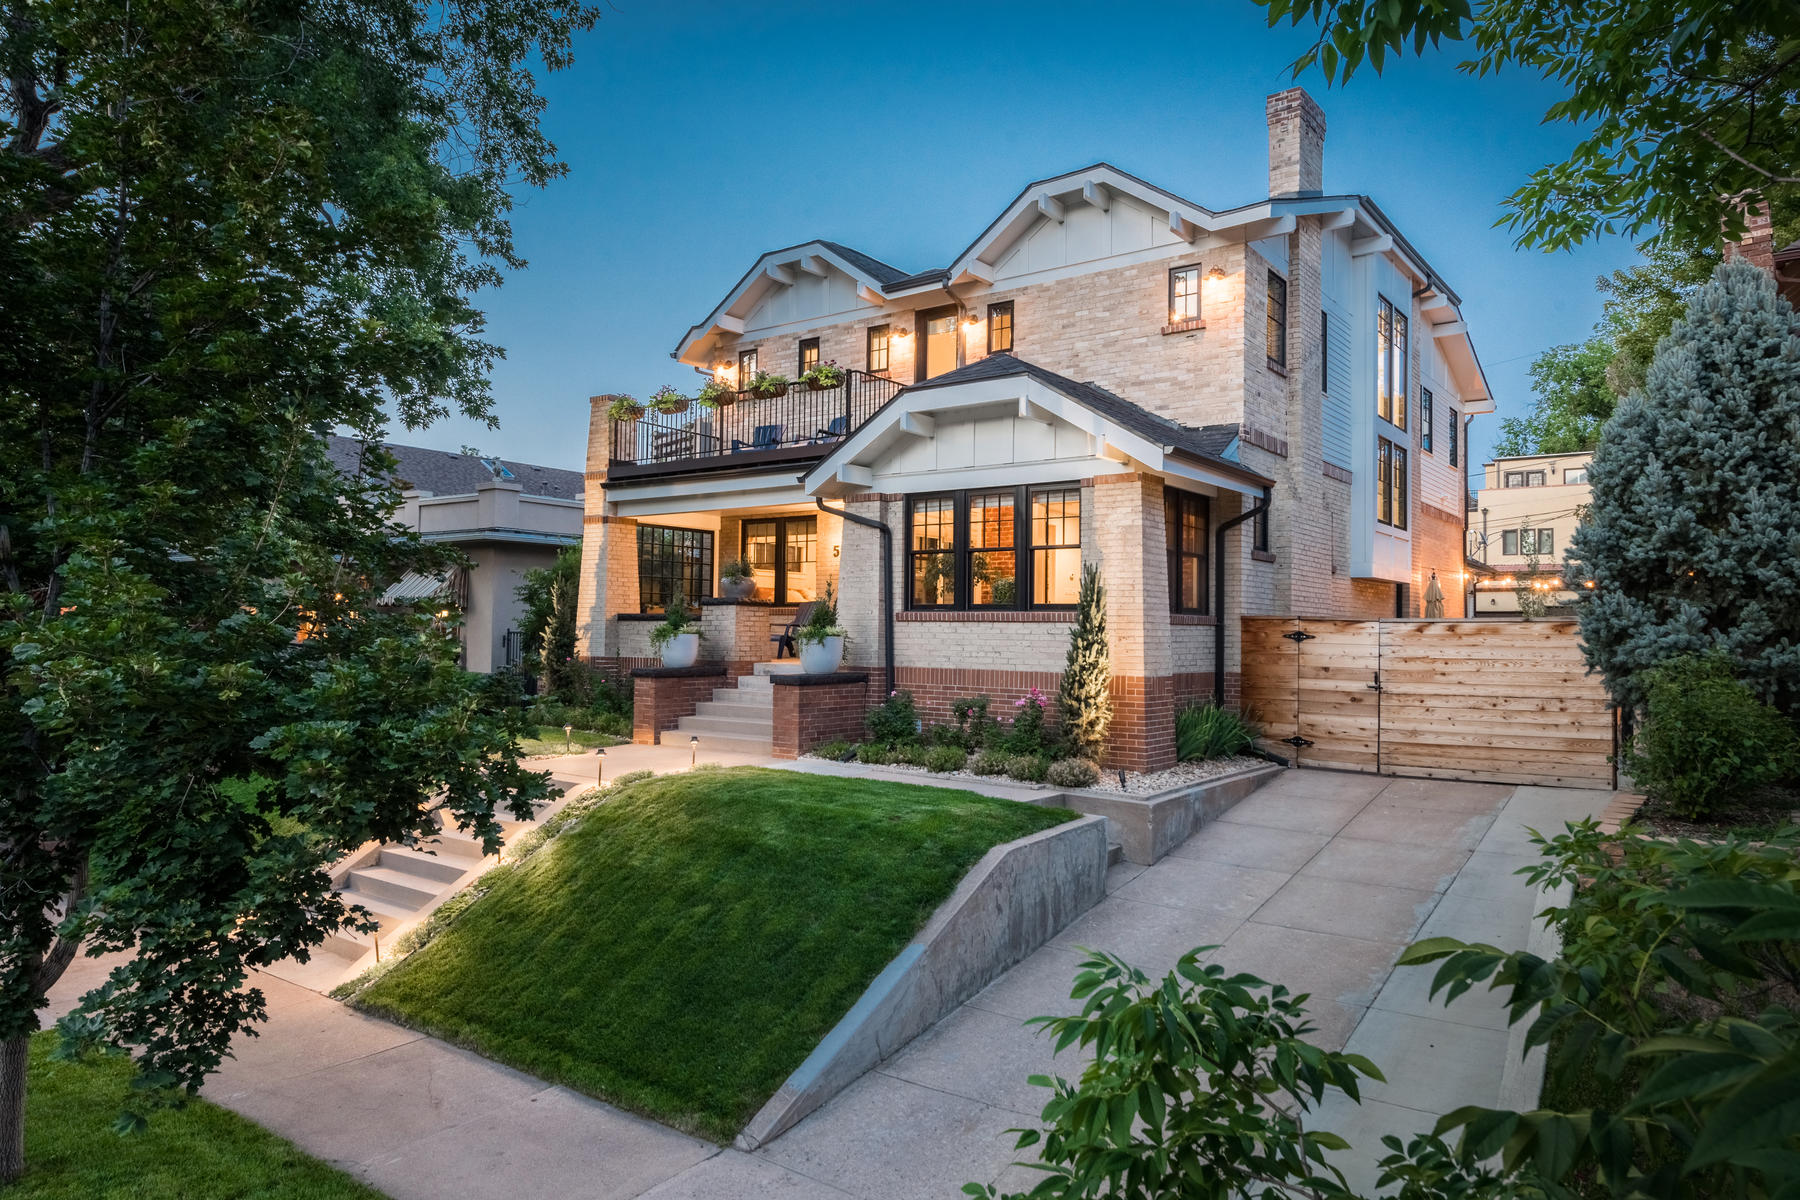 Single Family Home for Active at Historic Charm with a Clean, Modern Aesthetic 528 S. Corona Street Denver, Colorado 80209 United States